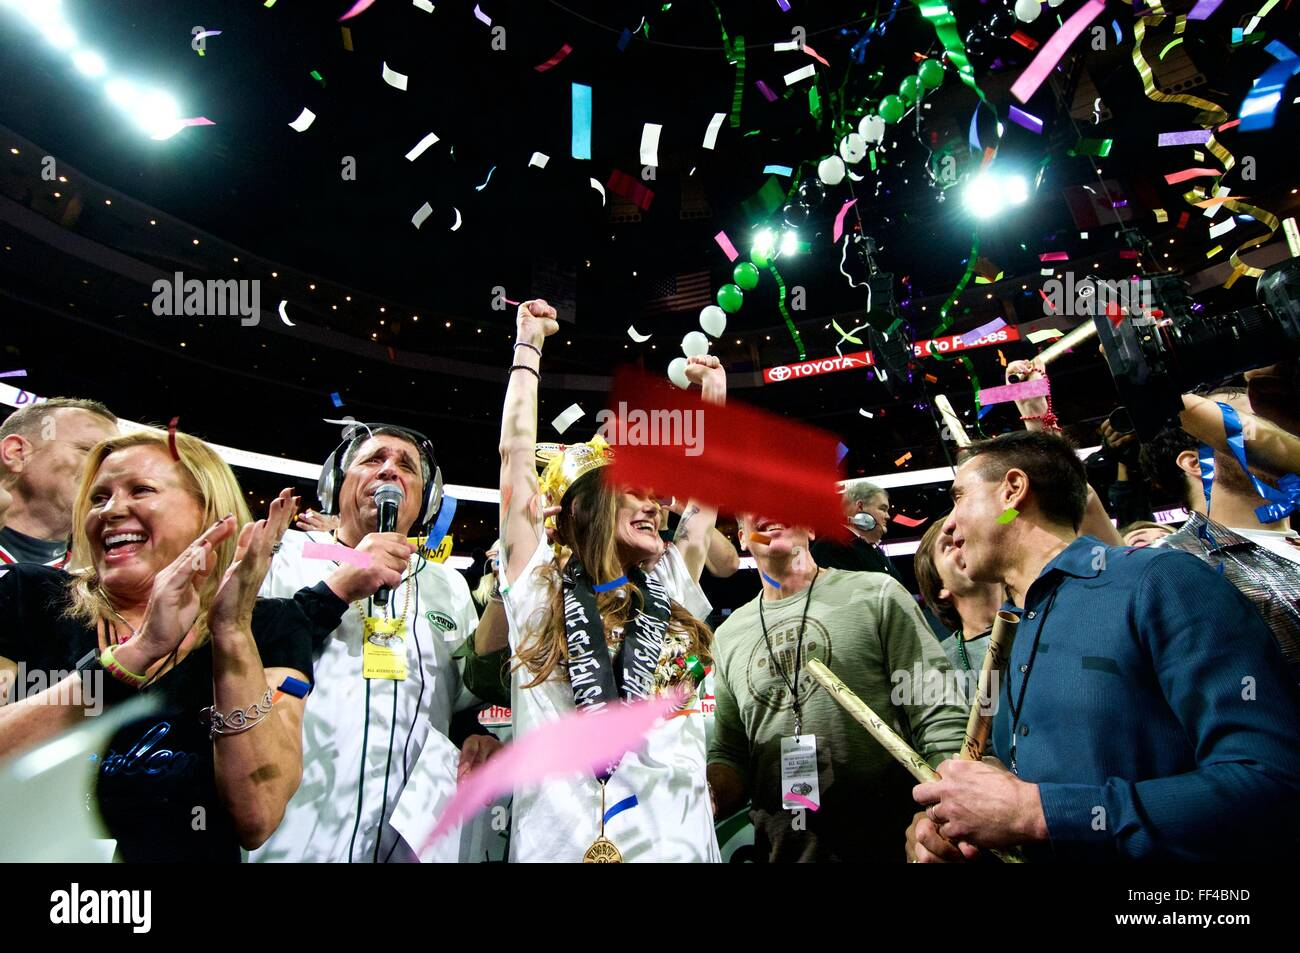 Competitive eater Molly Schuyler celebrates after winning Wing Bowl XXIV in Philadelphia, PA - Stock Image